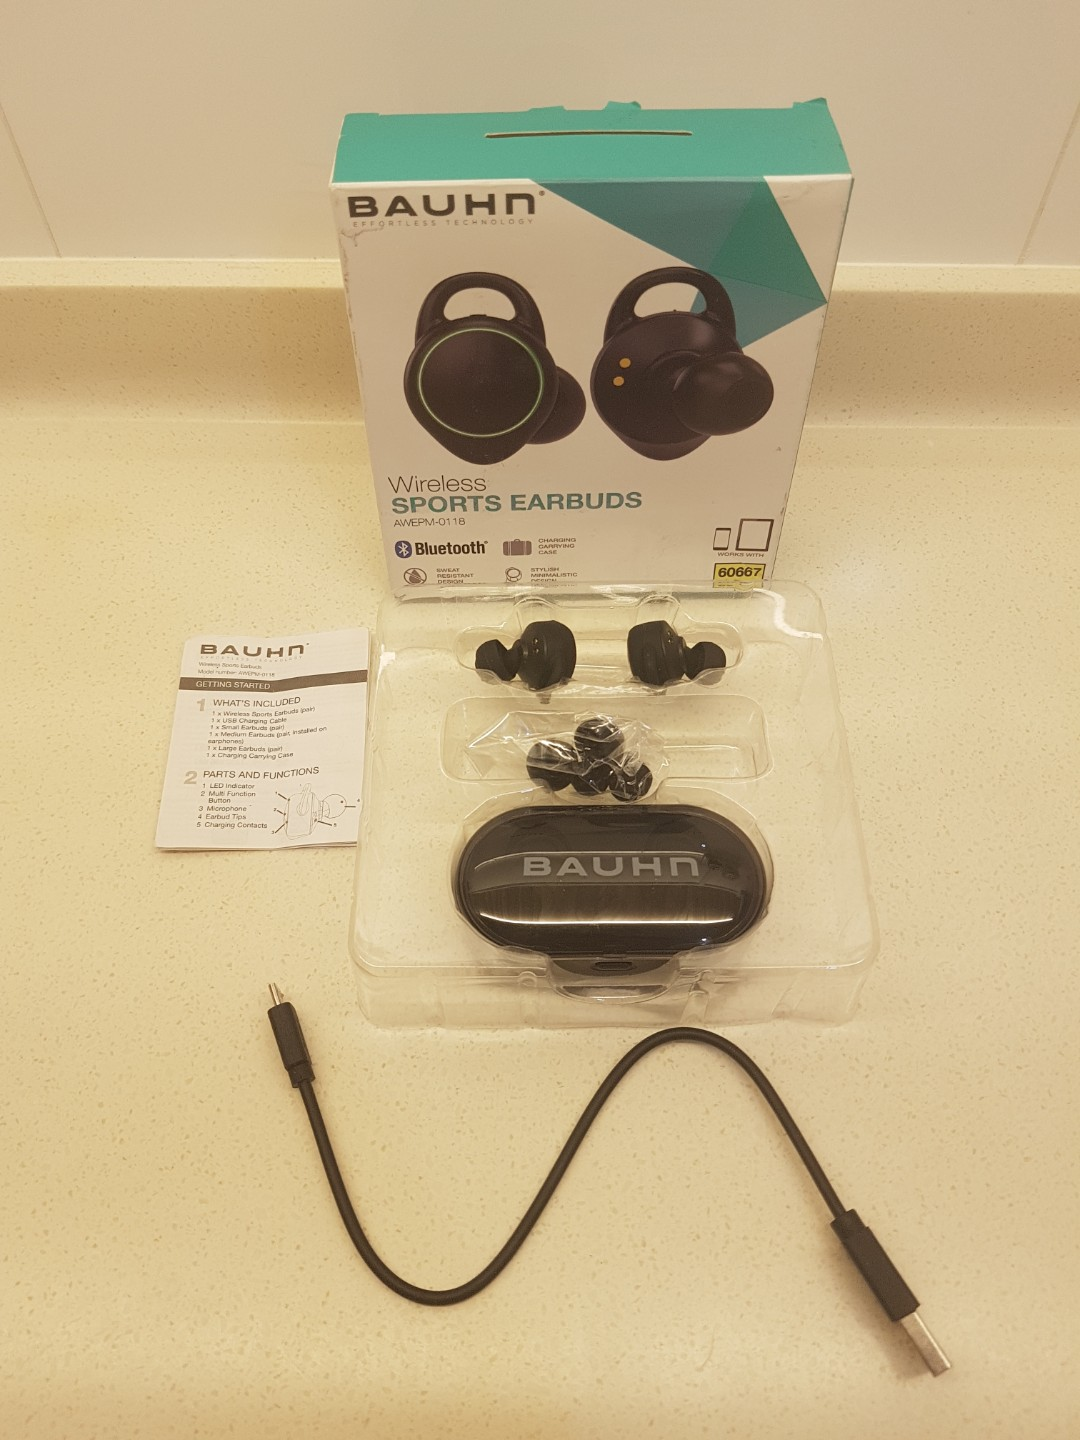 05cbac13e39 Bauhn Wireless Bluetooth Sports Earbuds / Headphone (Model: AWEPM-0118)  ----> From Australia, Electronics, Audio on Carousell